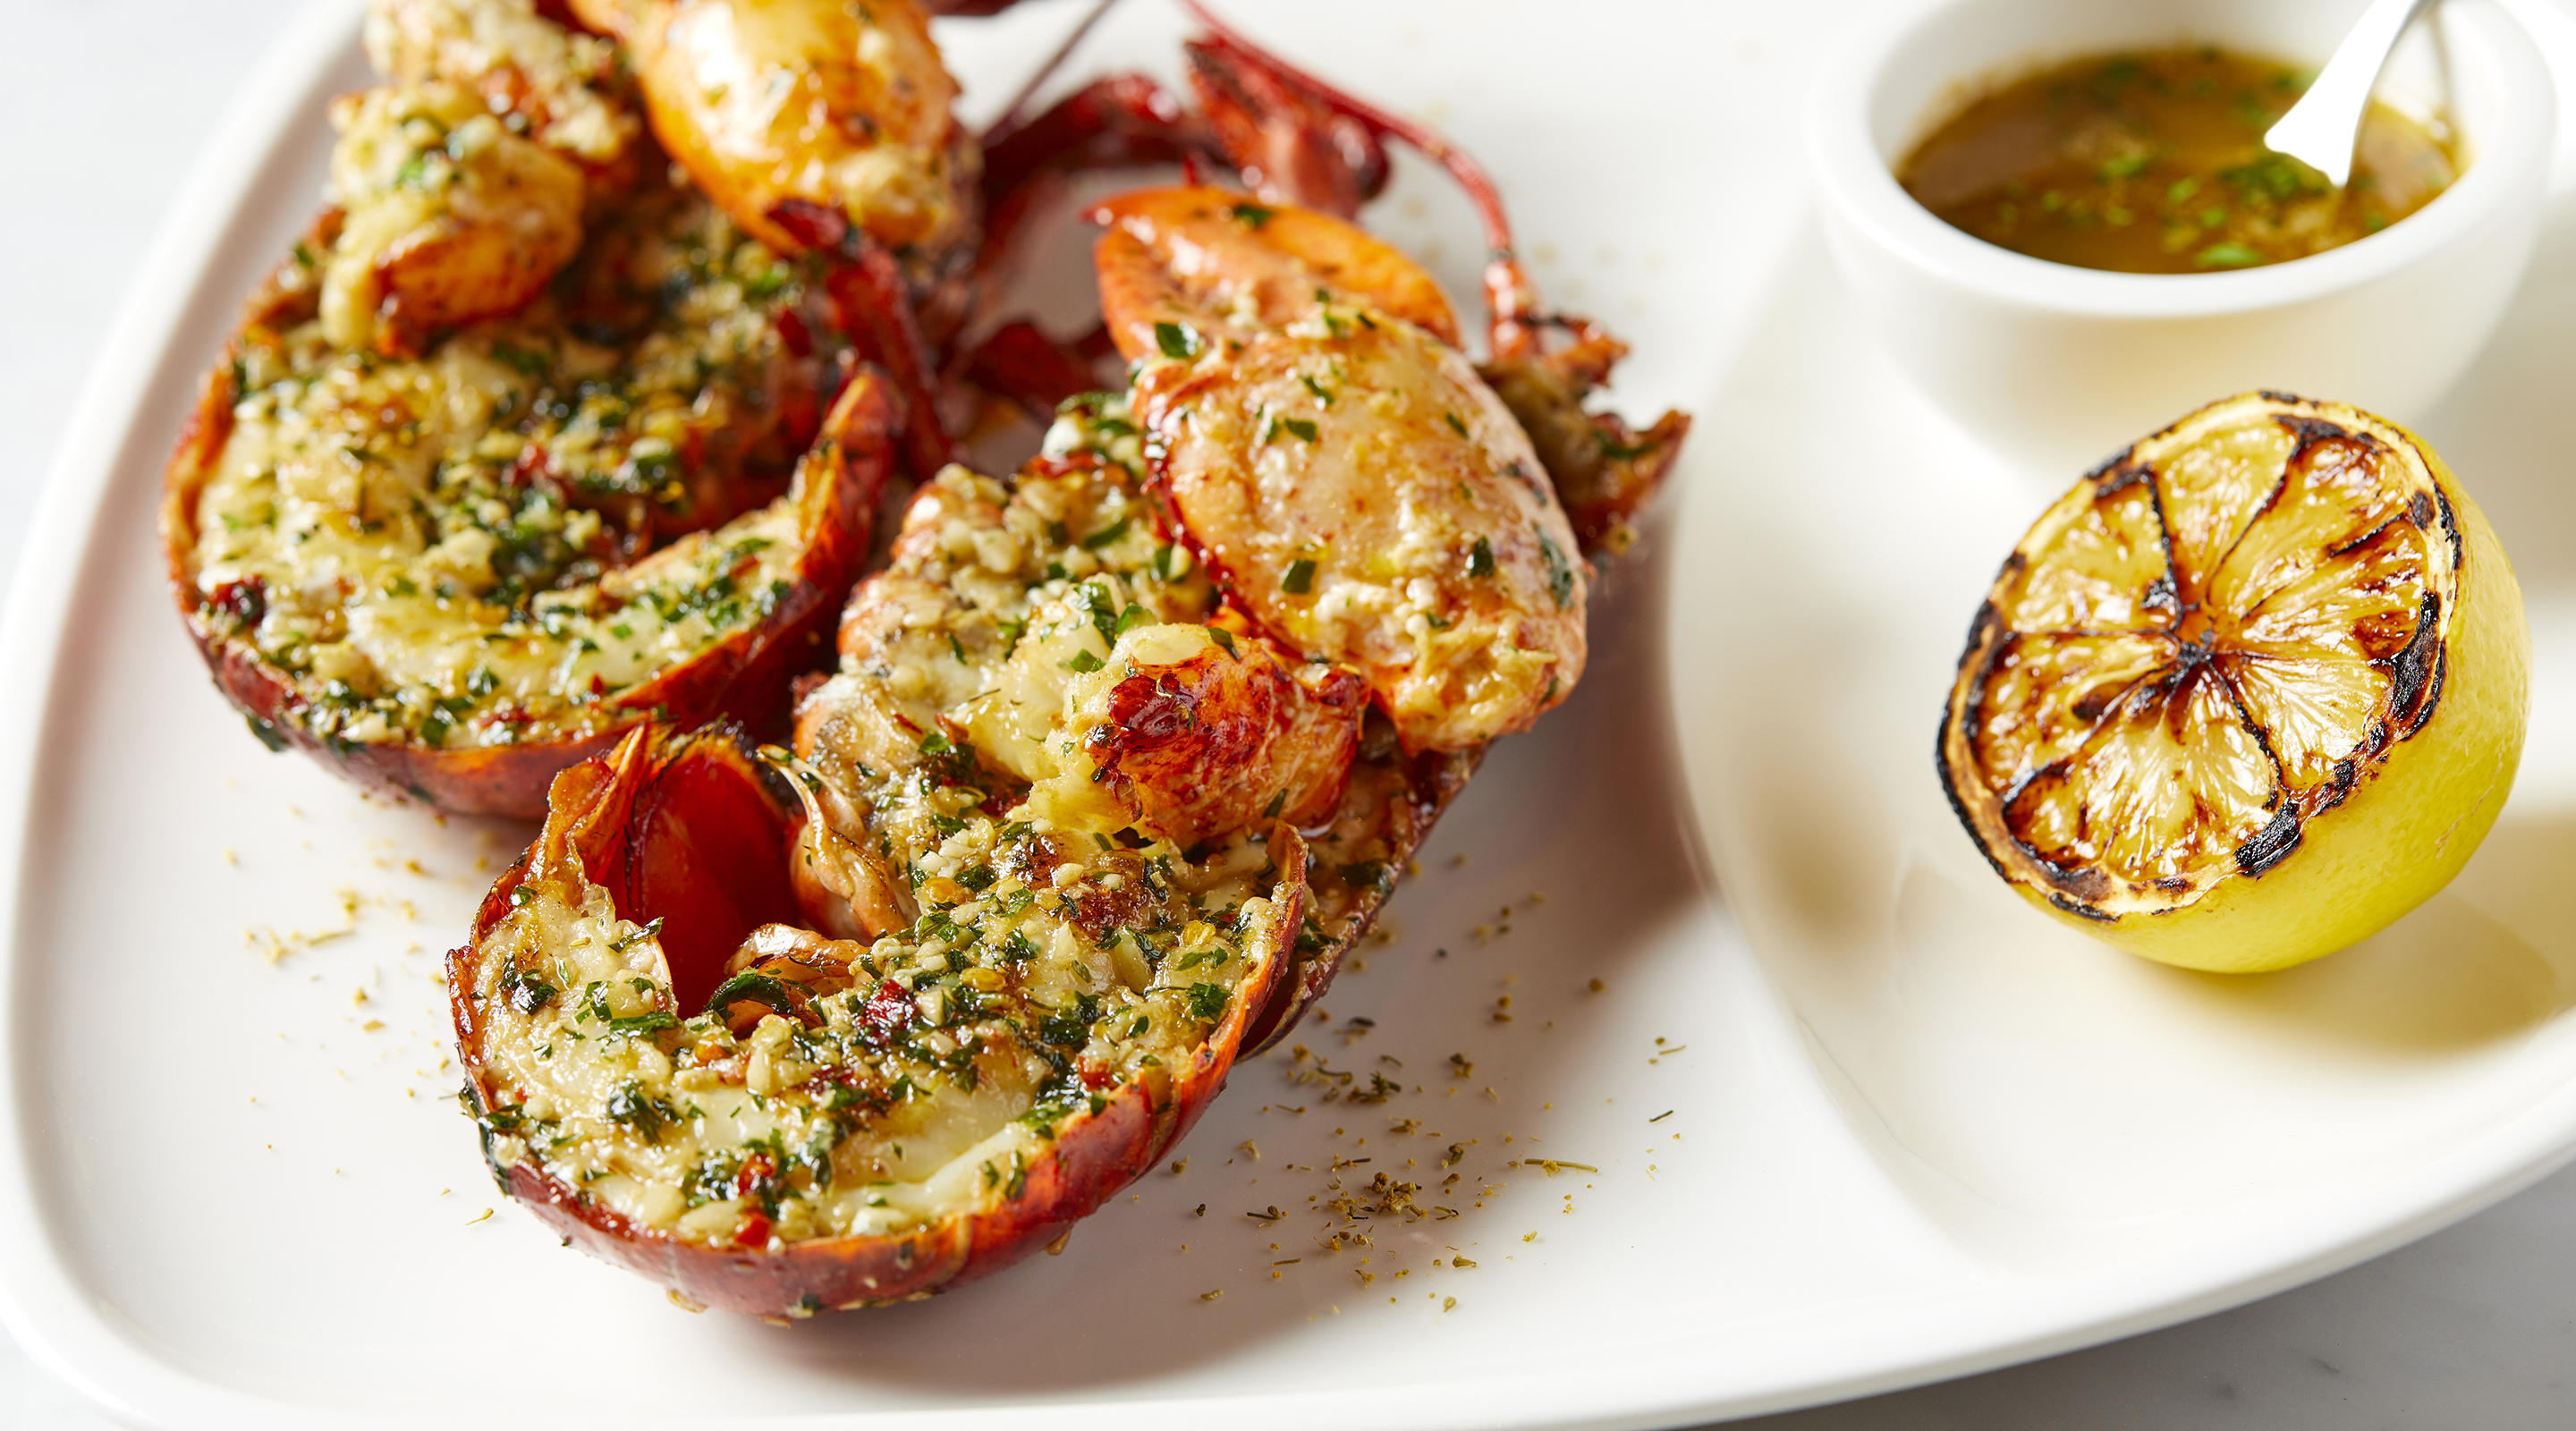 Lobster seasoned to perfection.